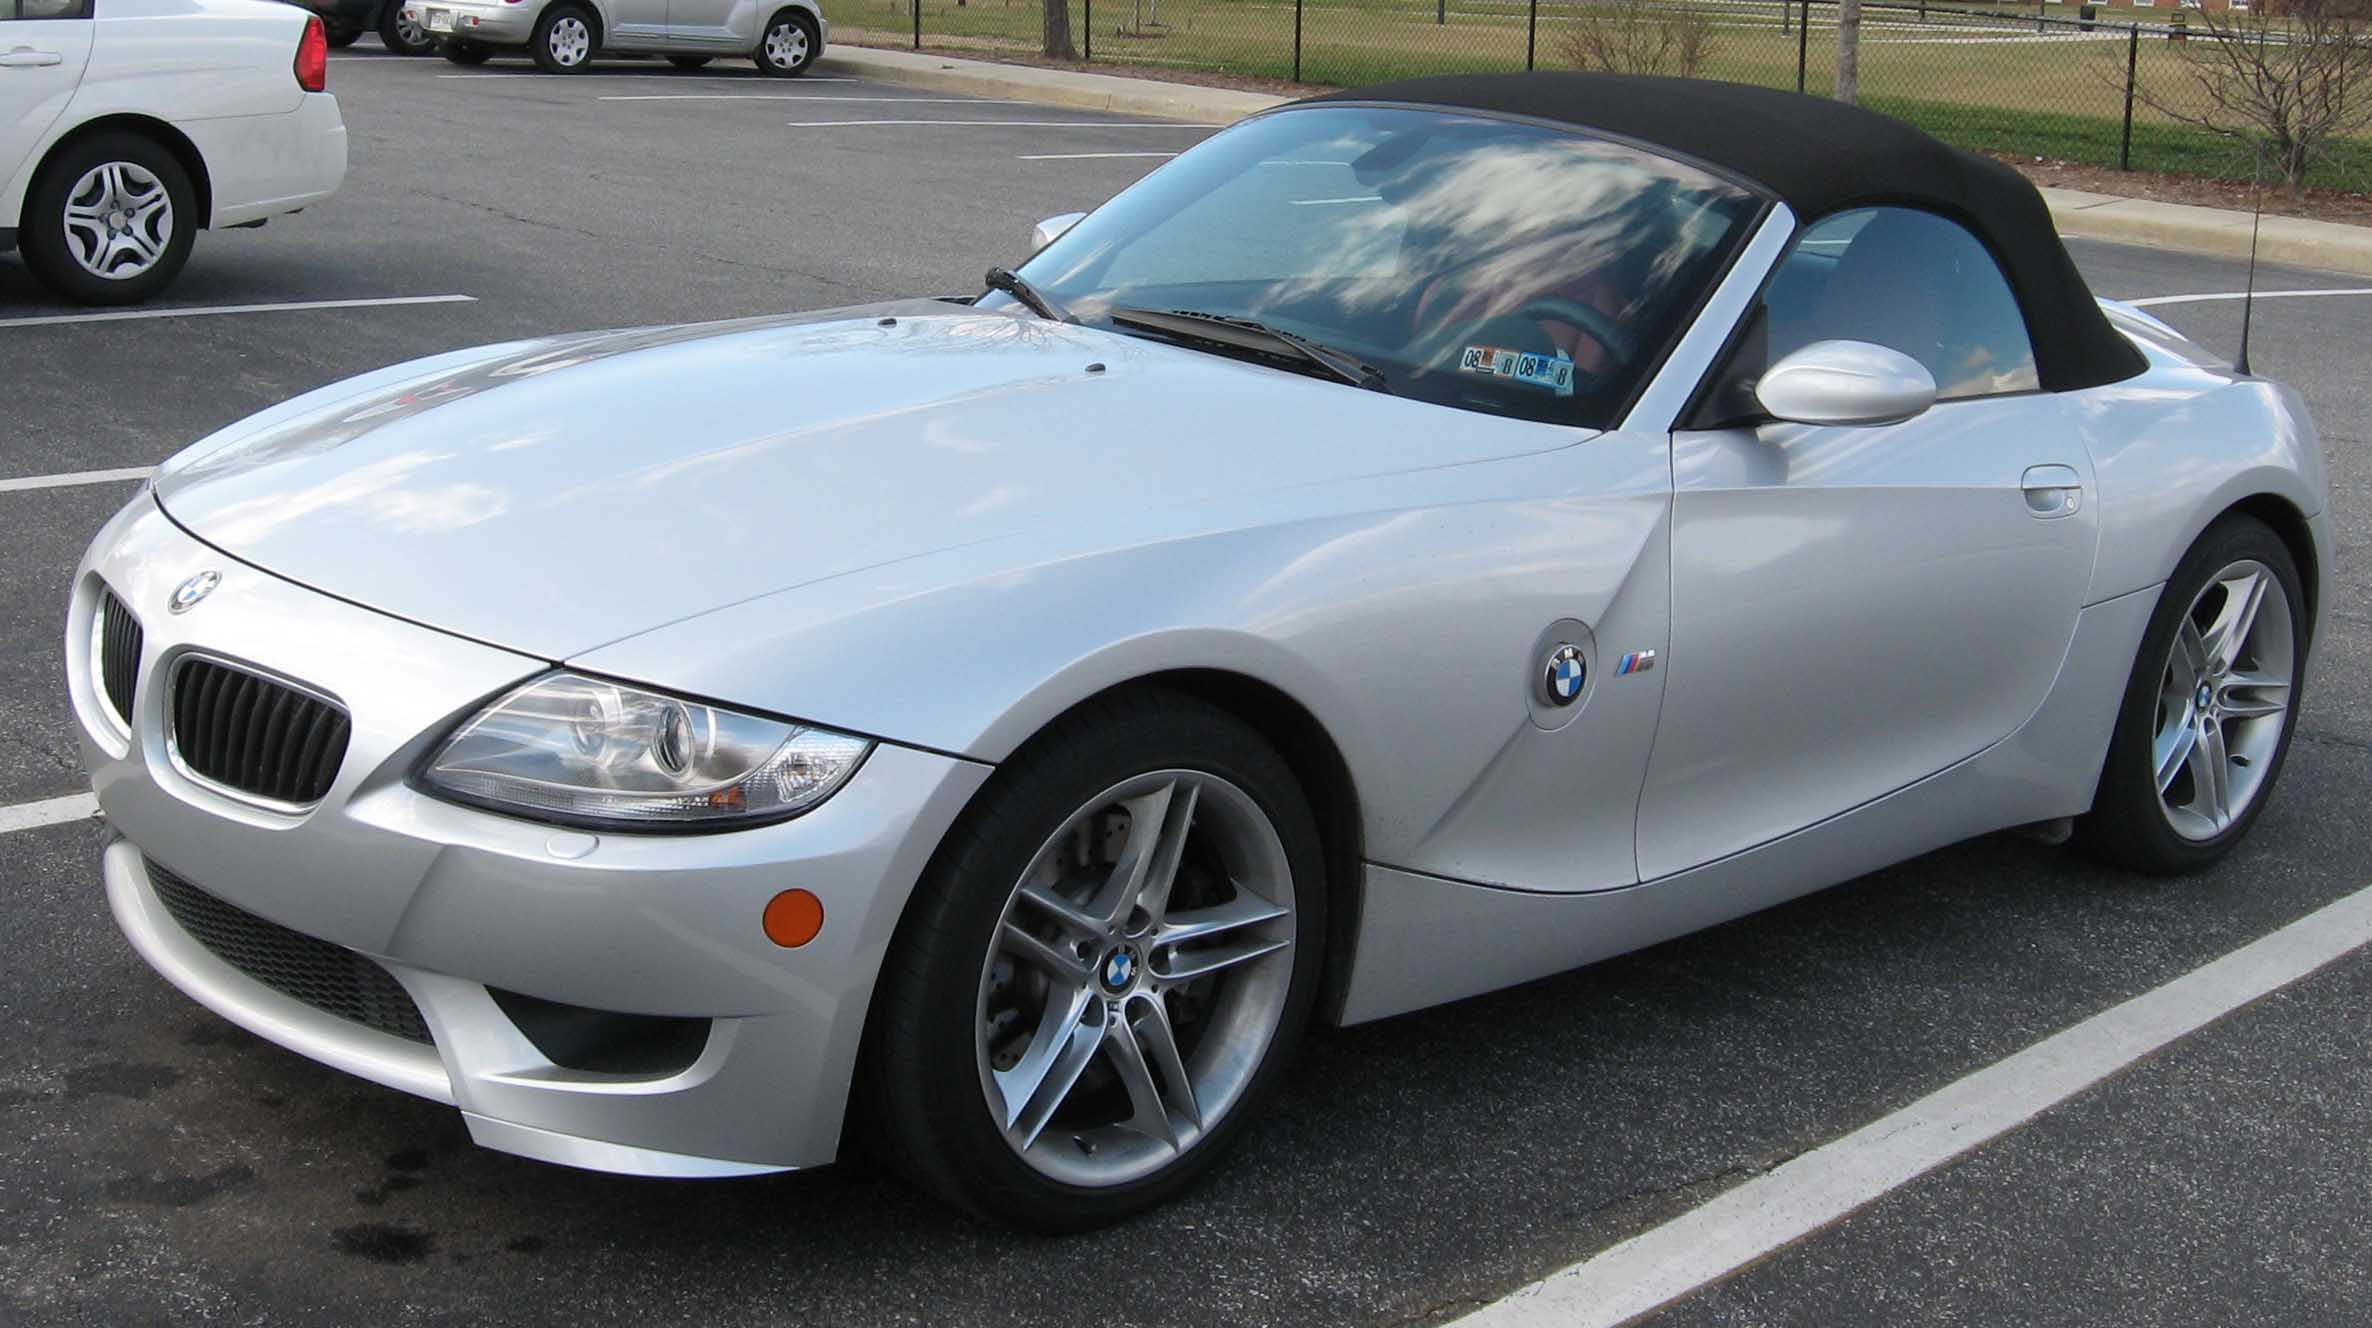 BMW Z4 M 2 front view in silver